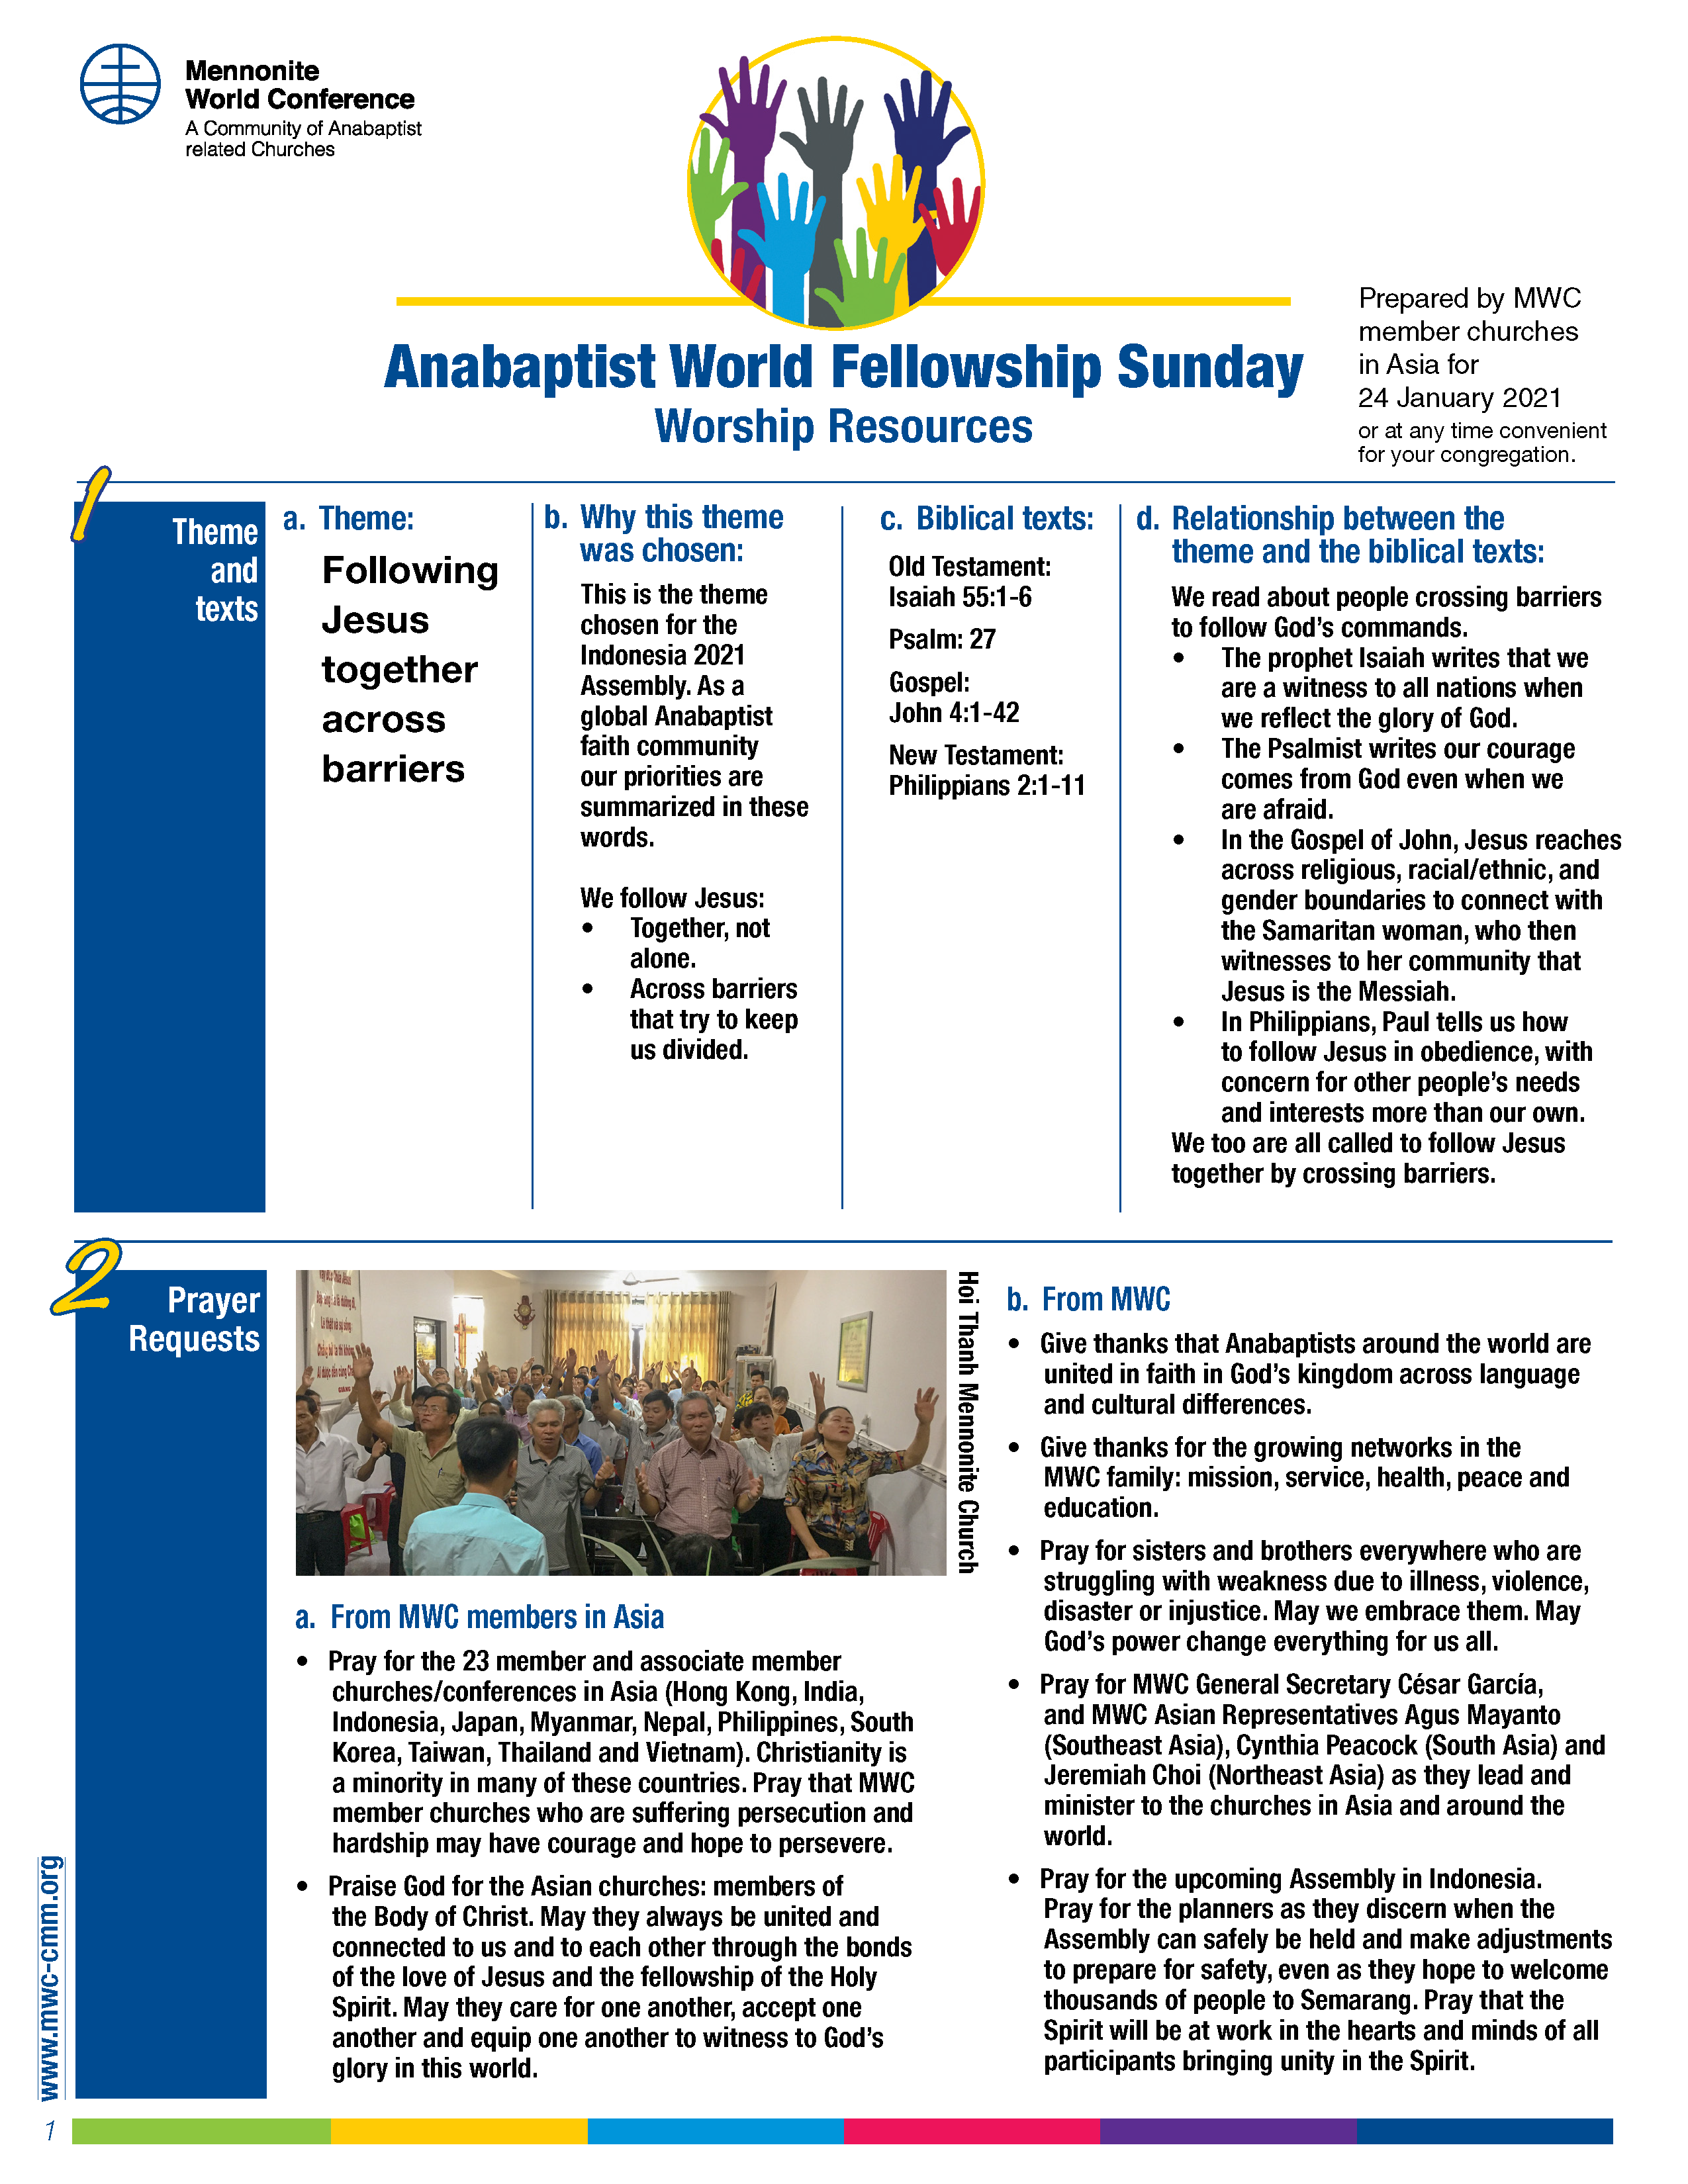 anabaptist world fellowship sunday 2021 worship resource